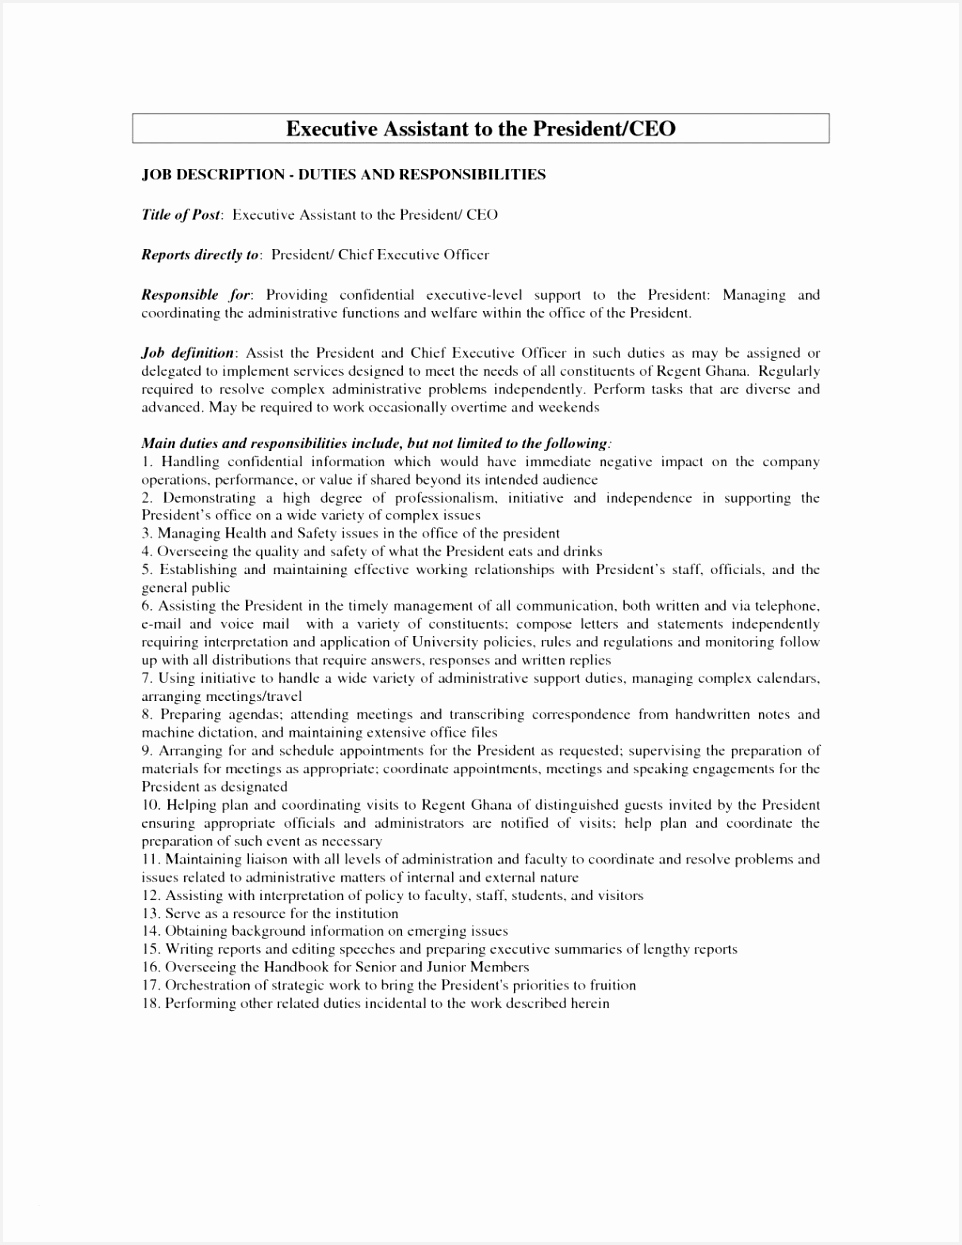 Morgue attendant Sample Resume Ckwri Lovely Chief Executive Ficer Resume Sample Coo Resume Templates – Free1245962